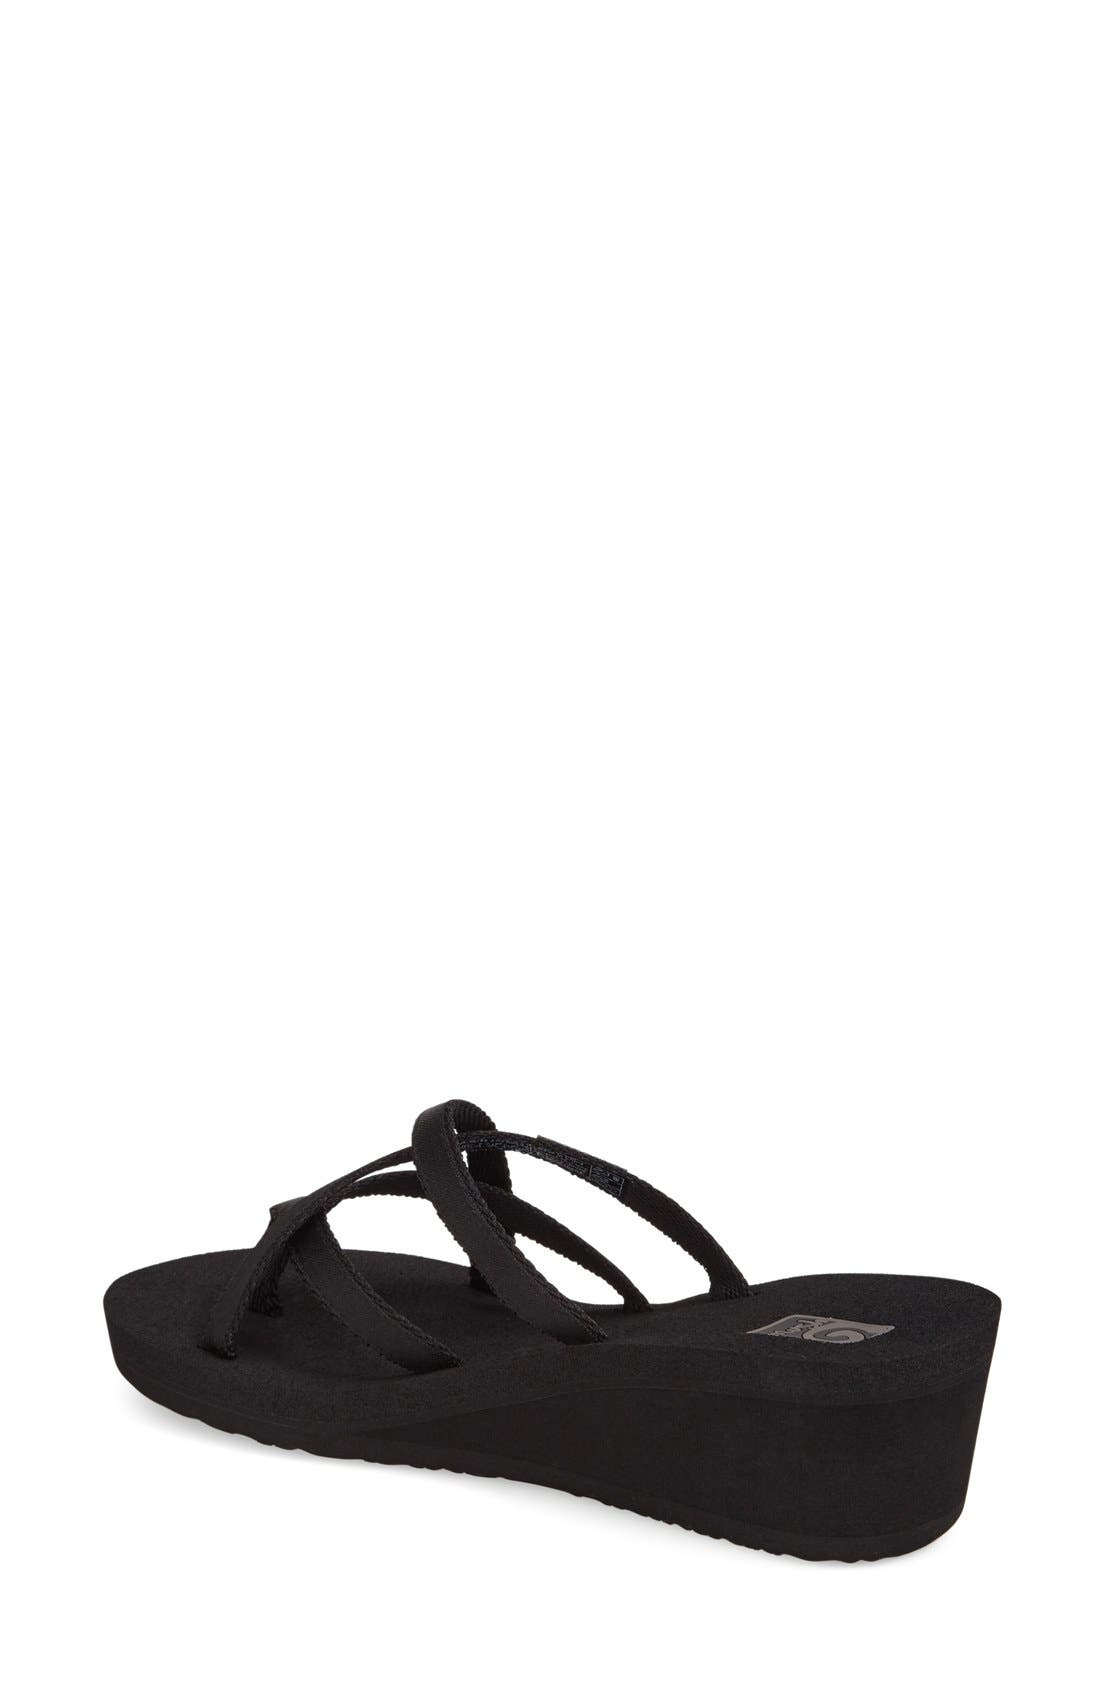 'Mandalyn' Wedge Sandal,                             Alternate thumbnail 2, color,                             BLACK